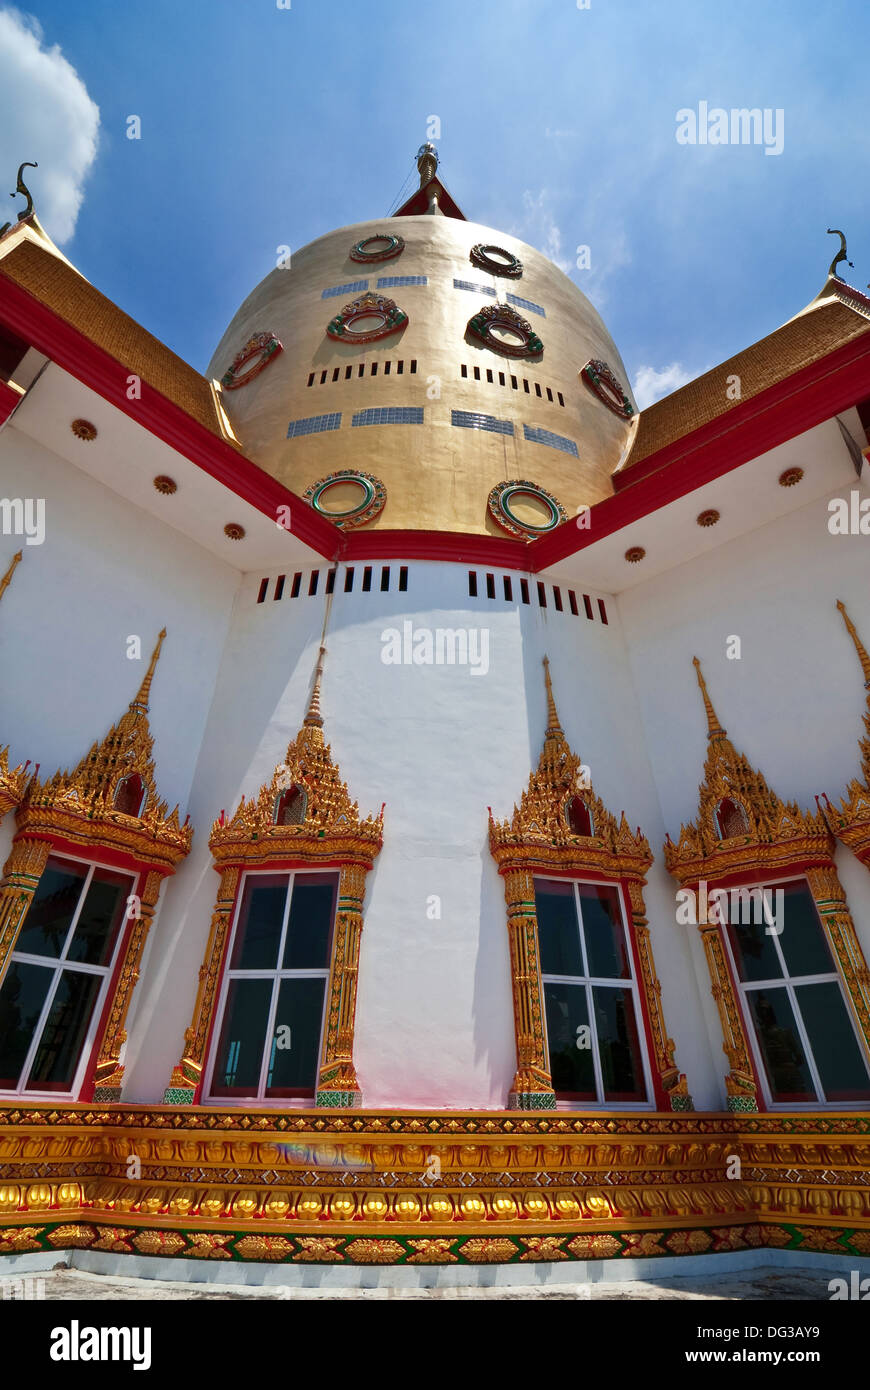 Main Chapel of Wat Prong-Are-Gard in Chachoengsao Province,Thailand - Stock Image